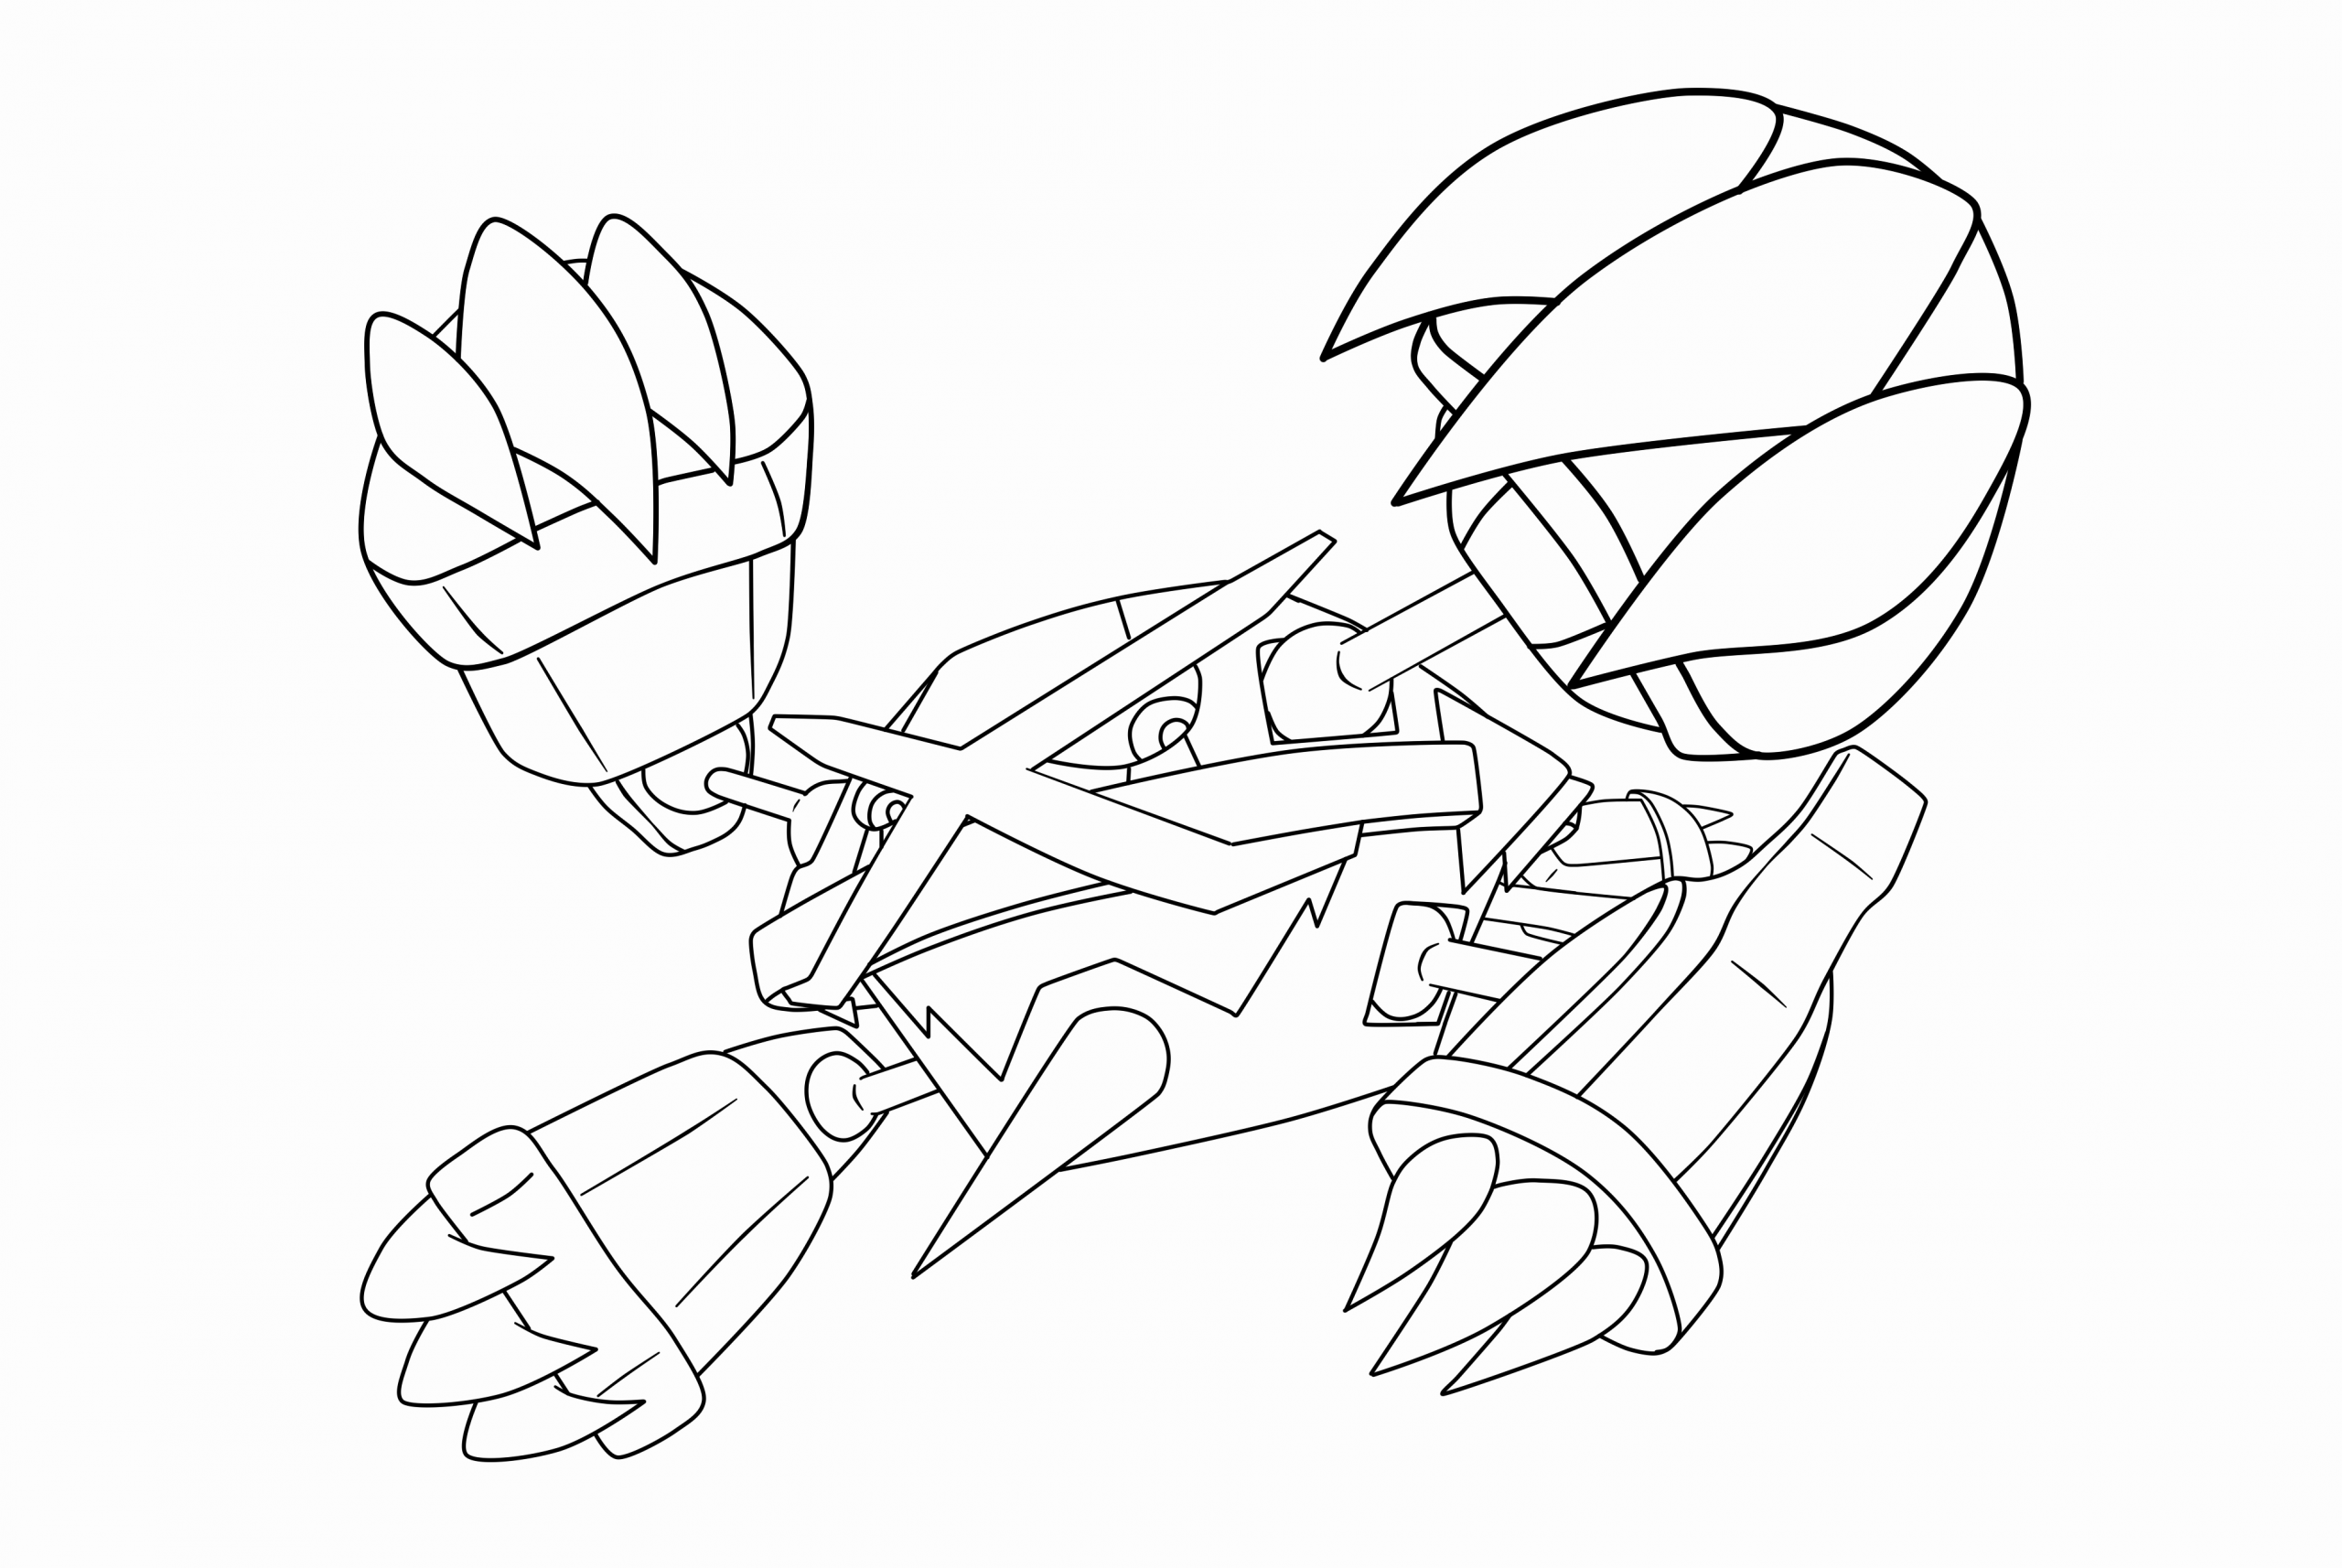 Mega Rayquaza Coloring Page Luxury S Bild Galeria Pokemon Mega Rayquaza Coloring Pages In 2020 Pokemon Coloring Pages Pokemon Coloring Coloring Pages